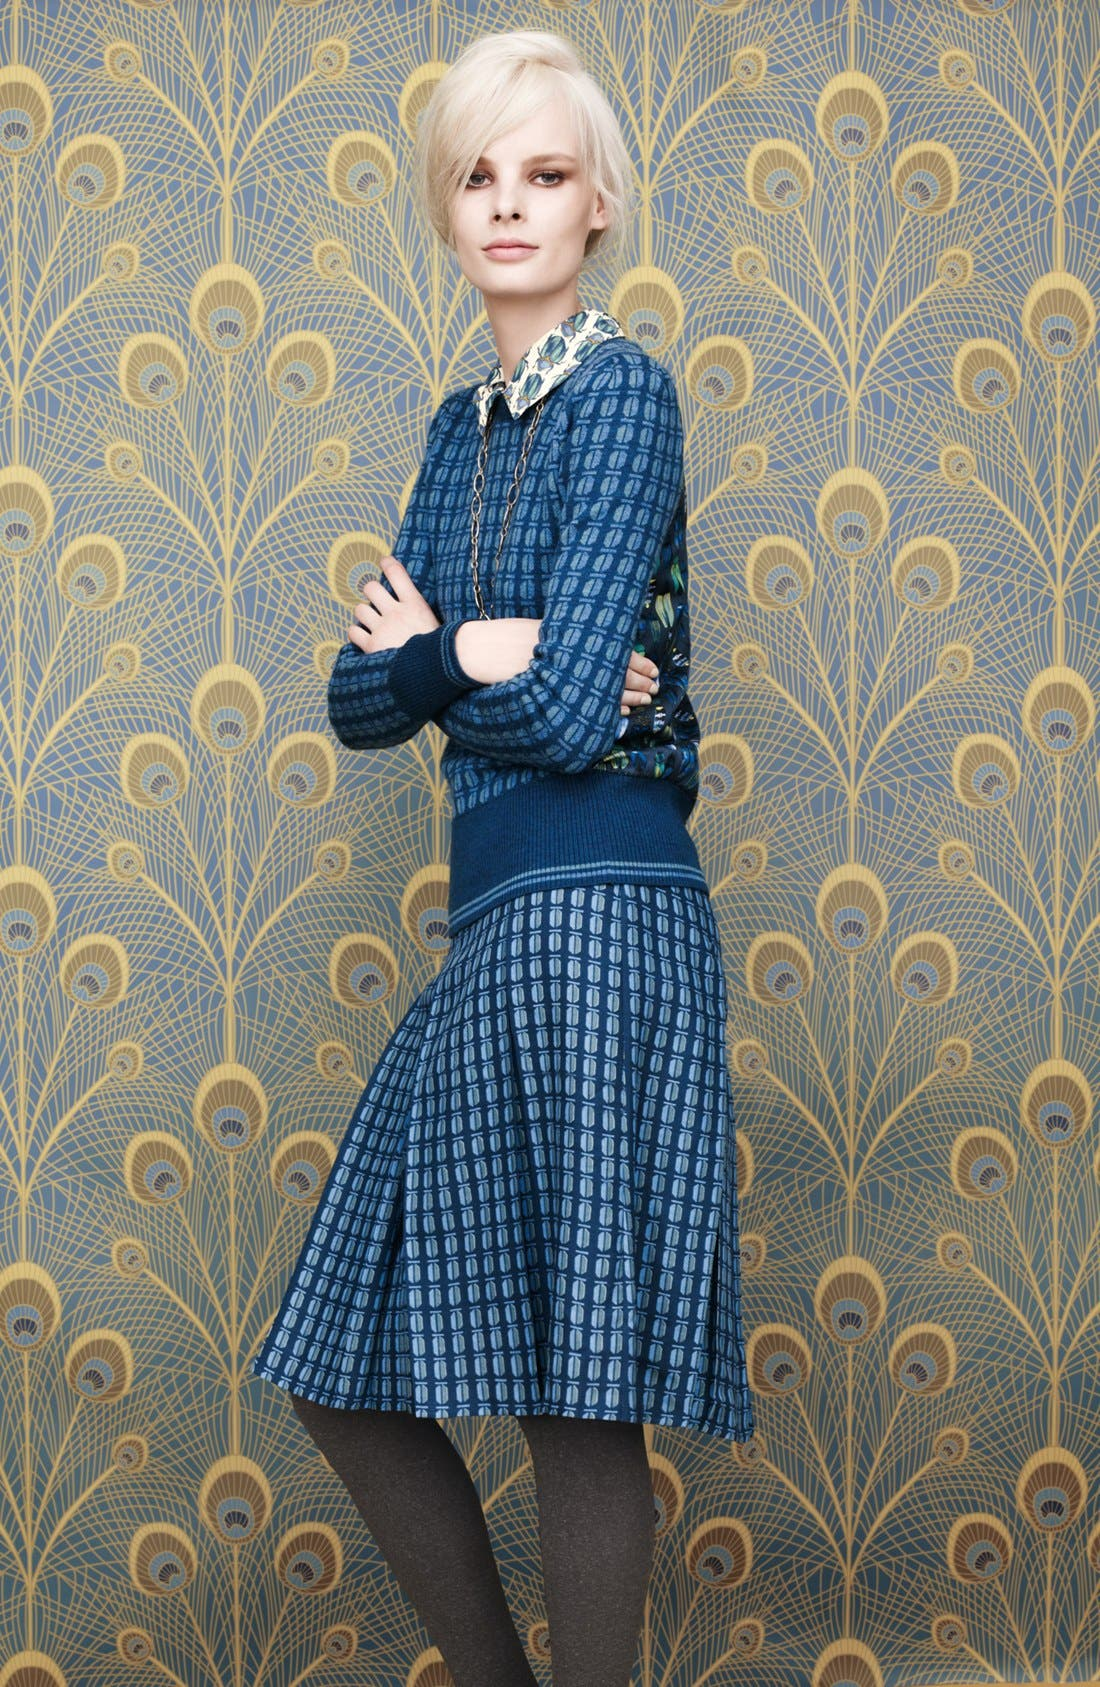 Main Image - Tory Burch Sweater, Blouse, Skirt & Pump